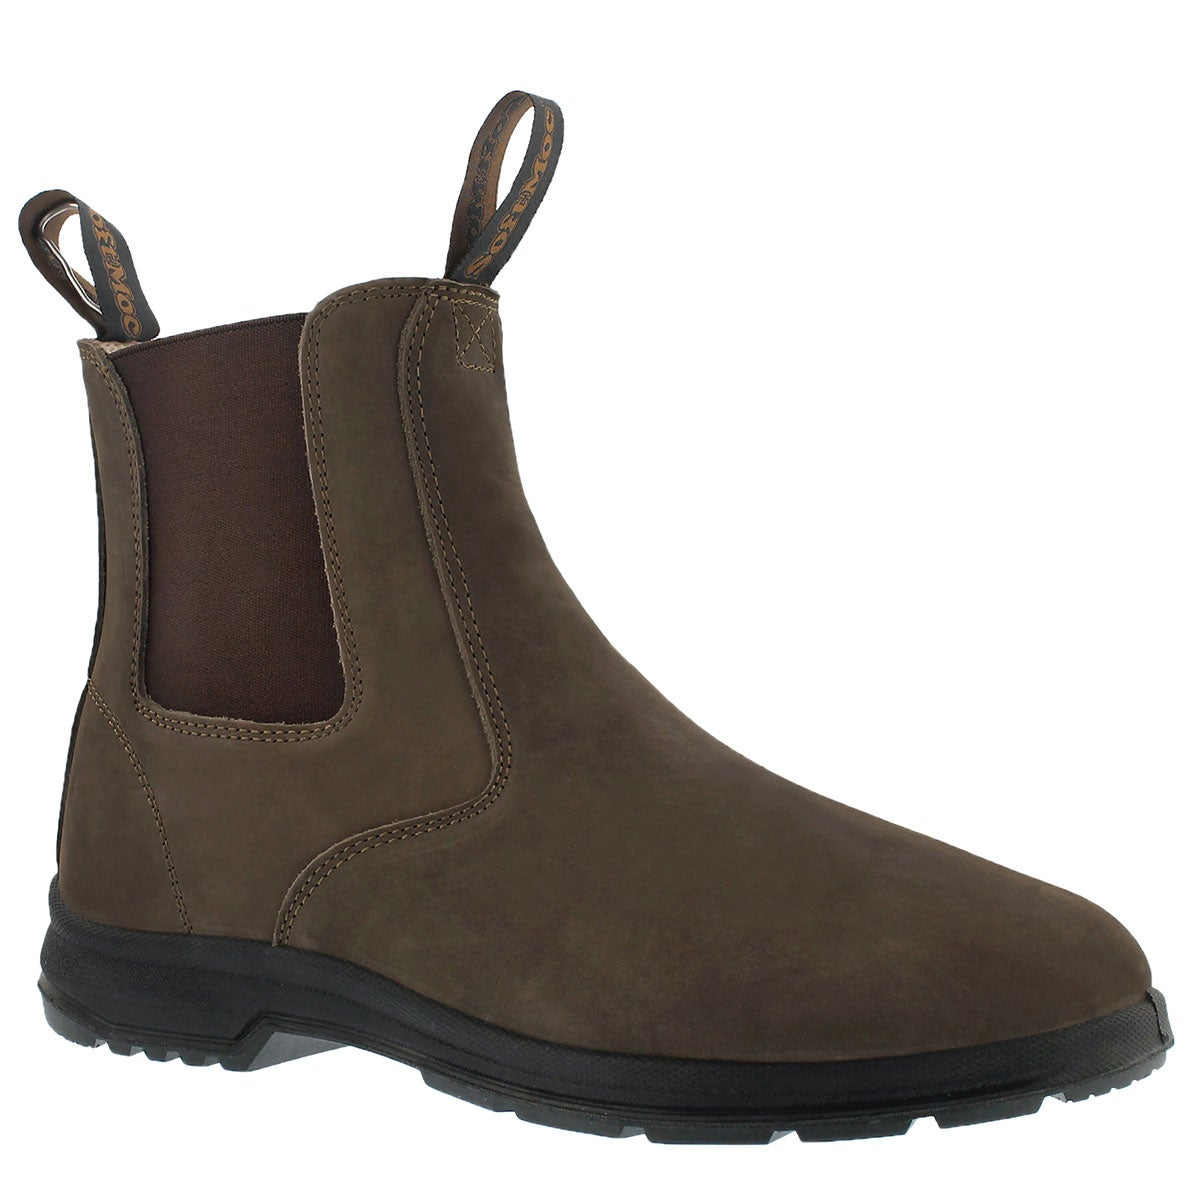 Women's ULURU brown chelsea boots